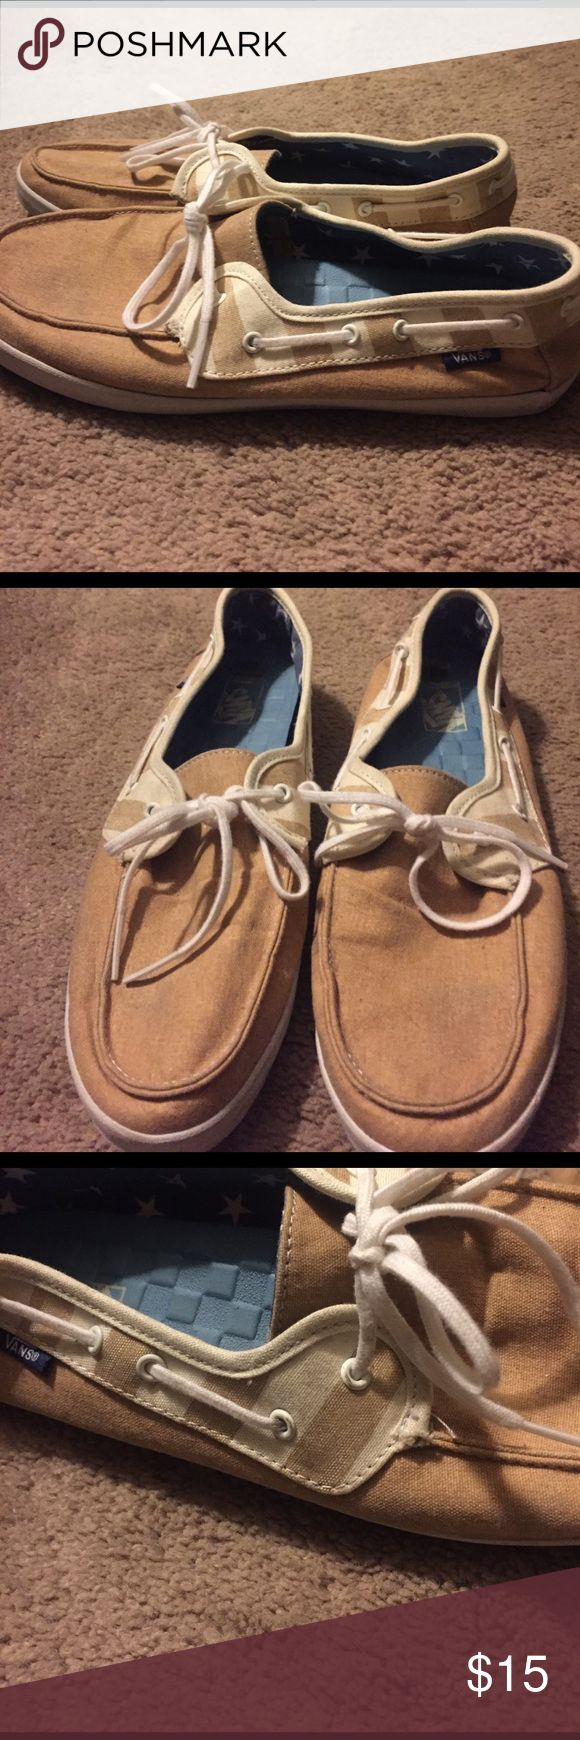 Vans boat shoes Tan and white noats shoes by vans Vans Shoes Flats & Loafers